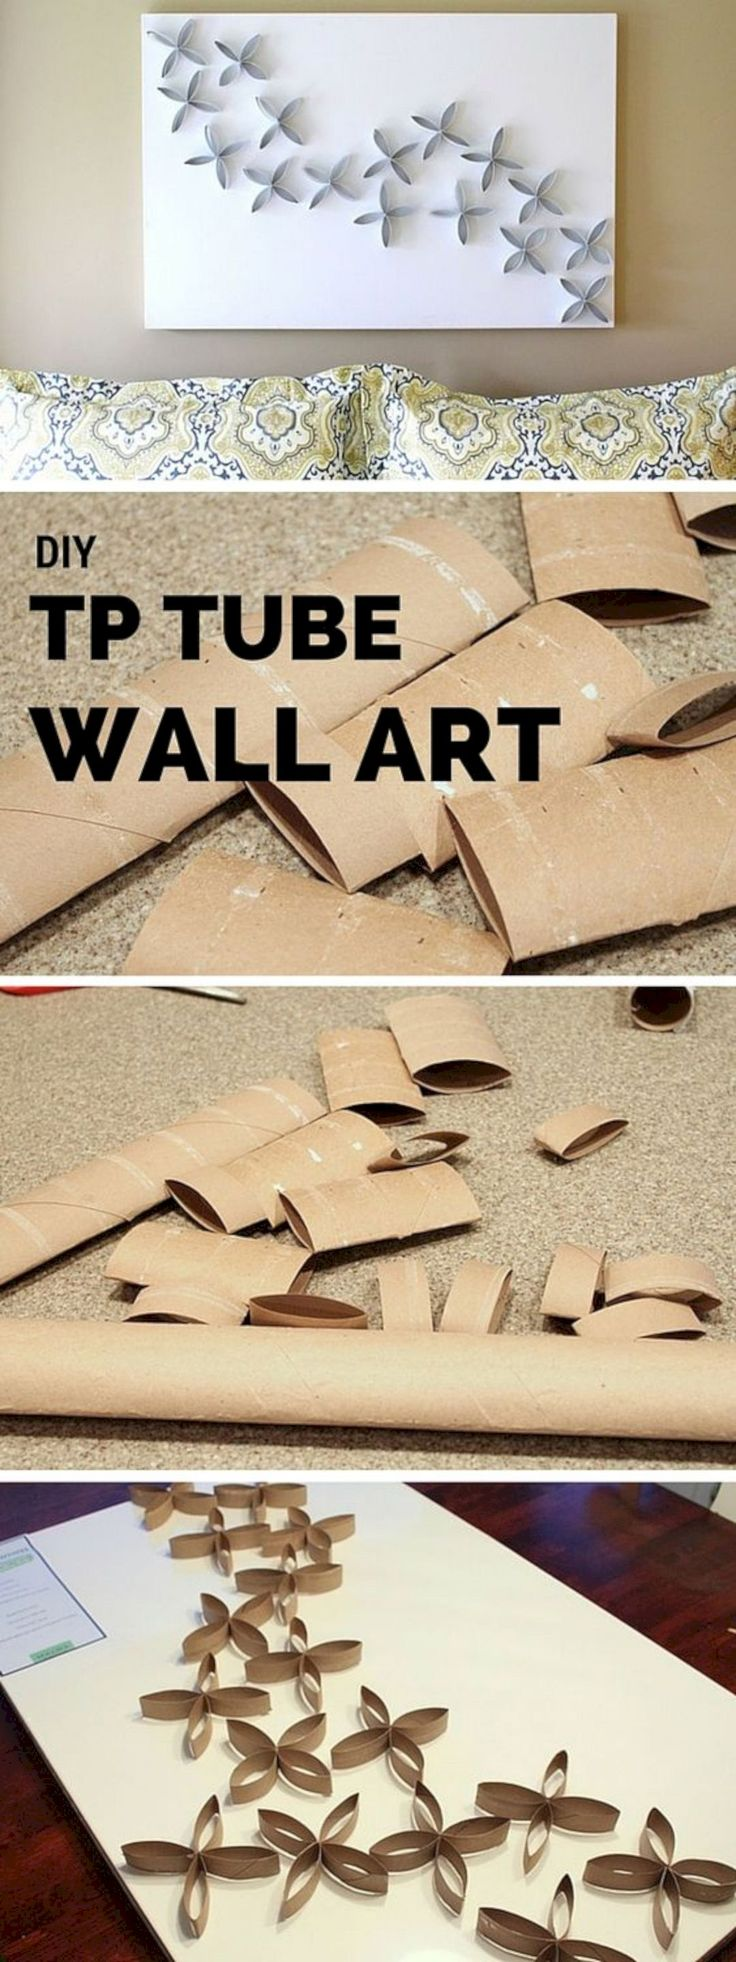 how to make bookshelf at home with waste material